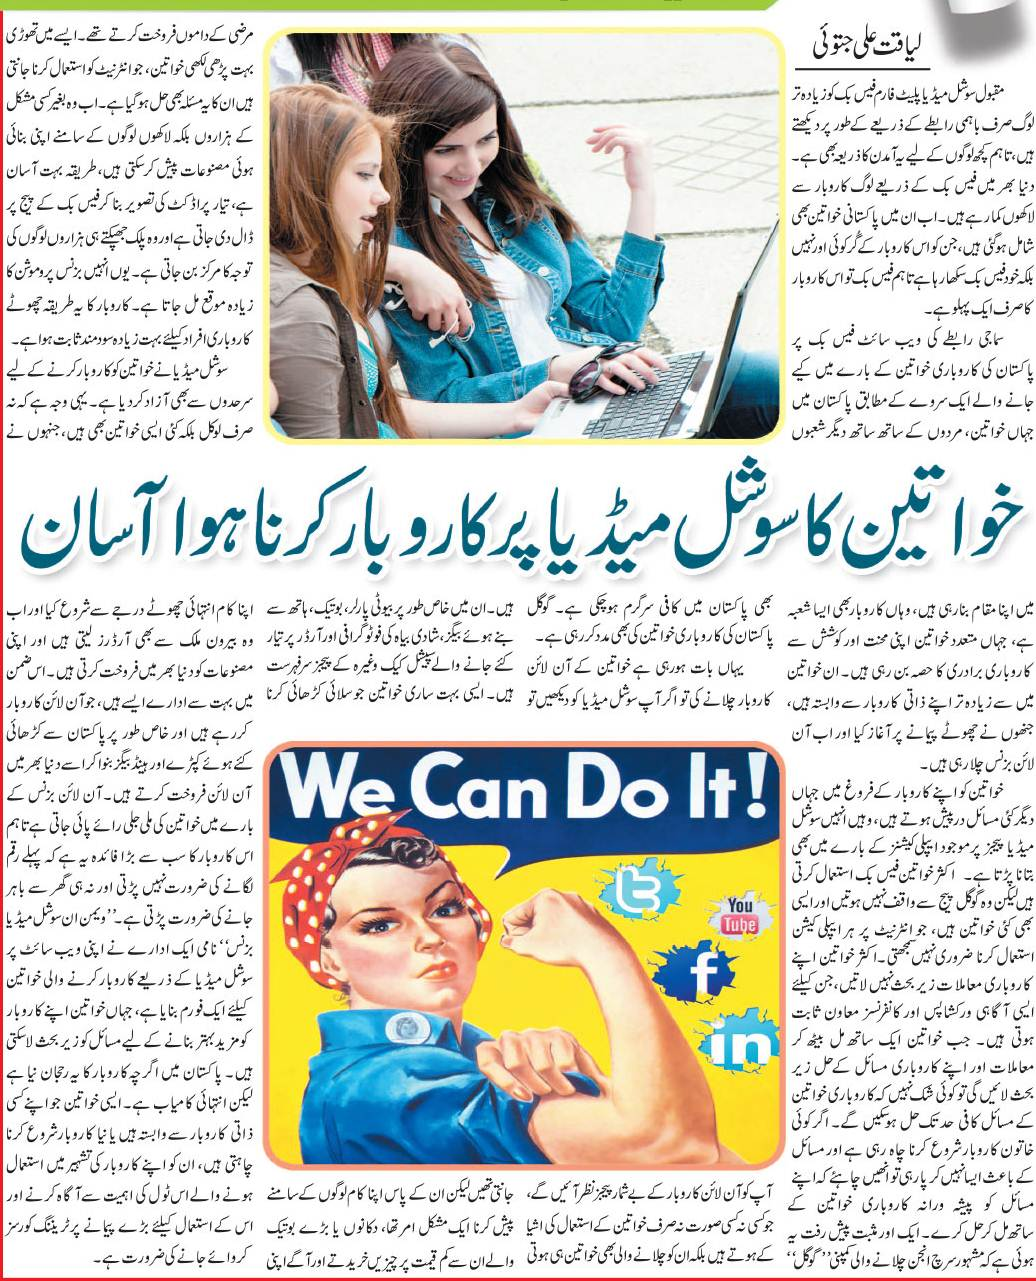 Facebook Business Ideas For Pakistani Females-Best Earn Money Online Options